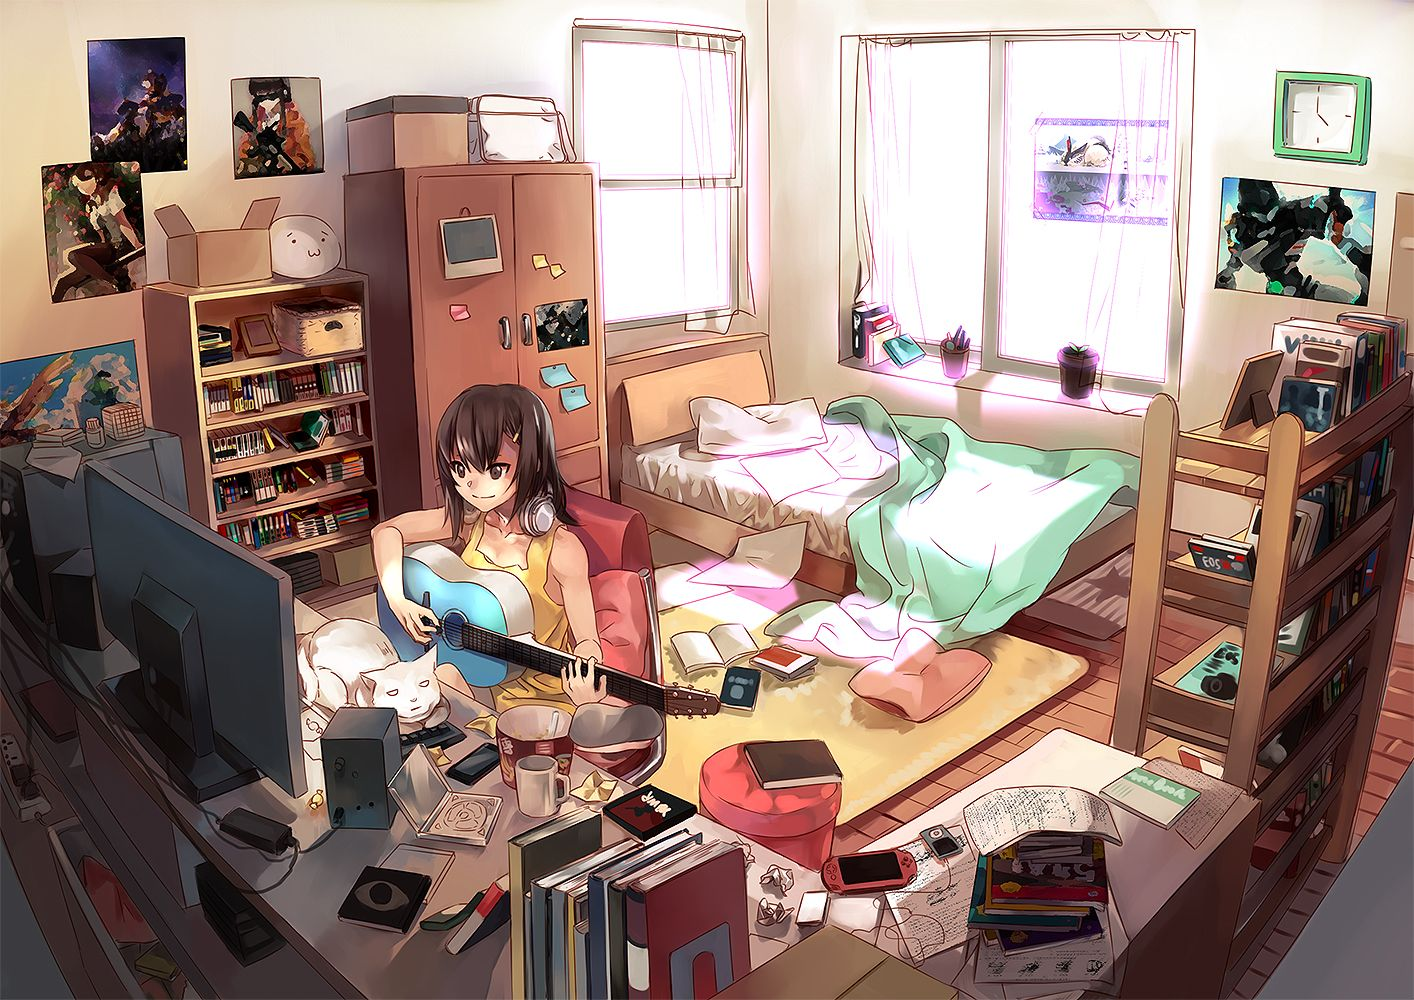 Master Anime Ecchi Picture Wallpapers Room Computer